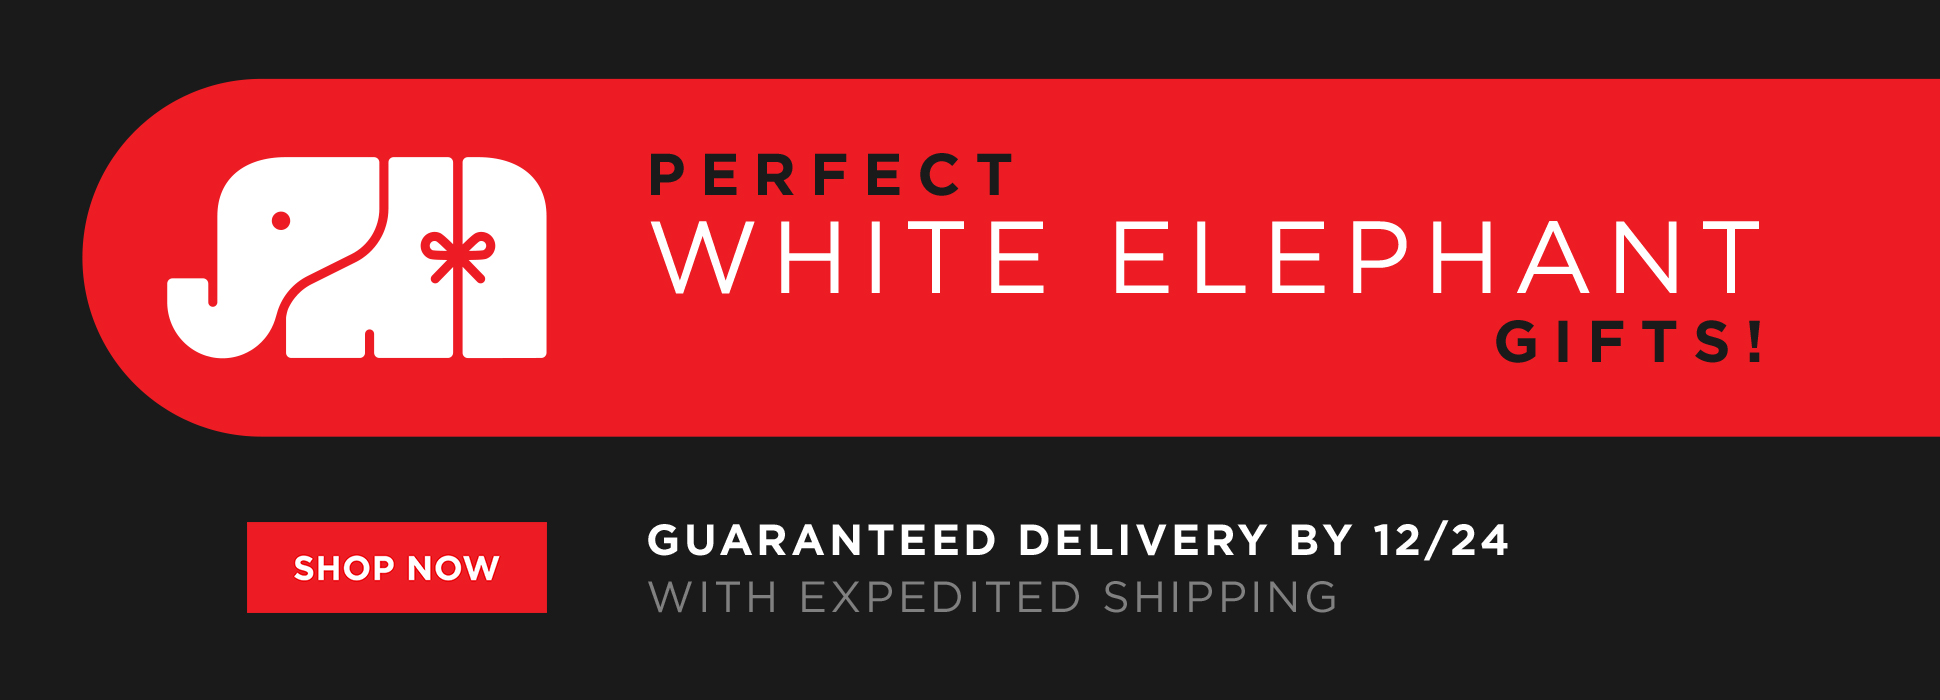 White Elephant Gifts (Web Banner)